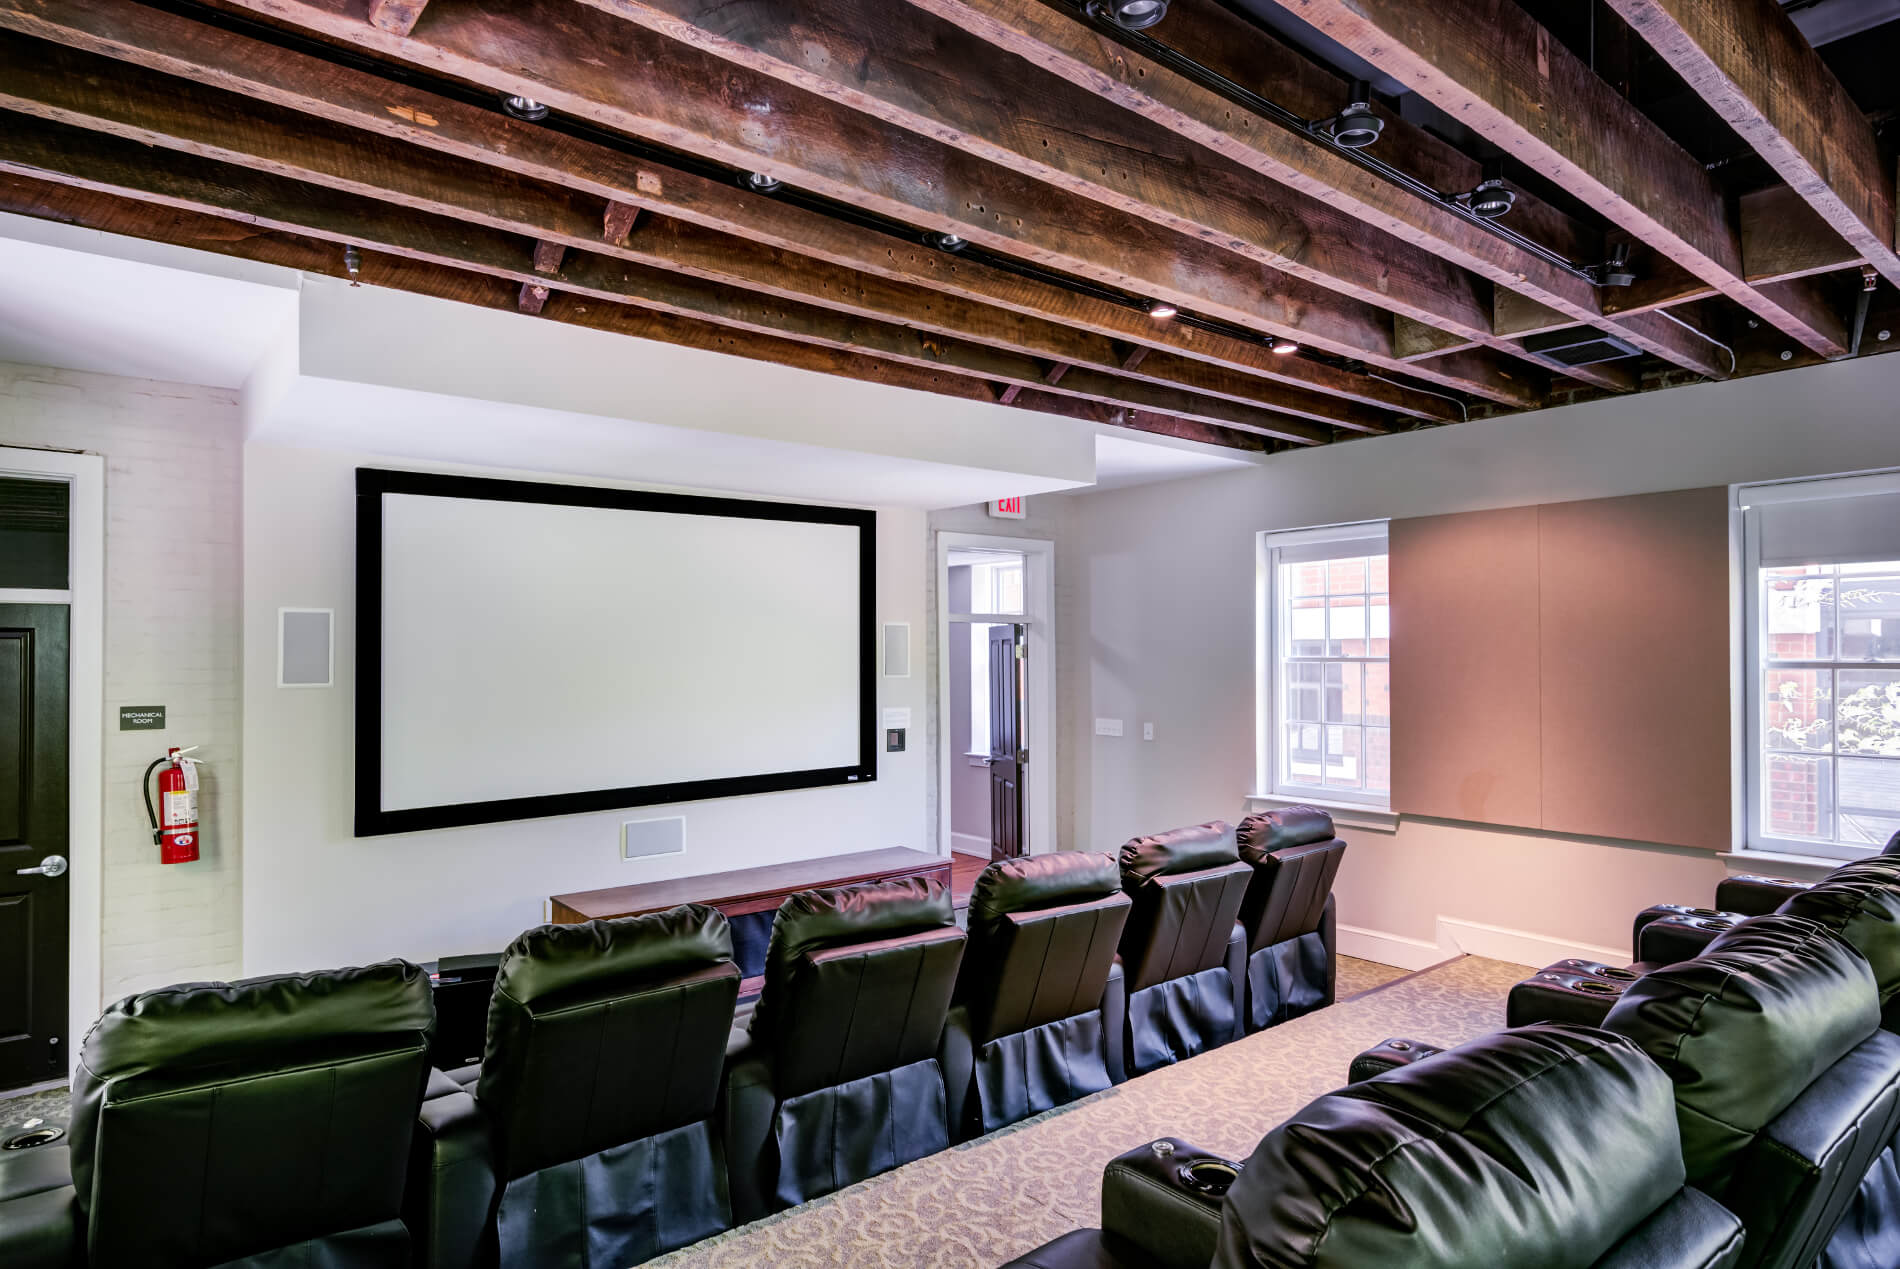 Theater with big screen, and tiered recliner-style seating